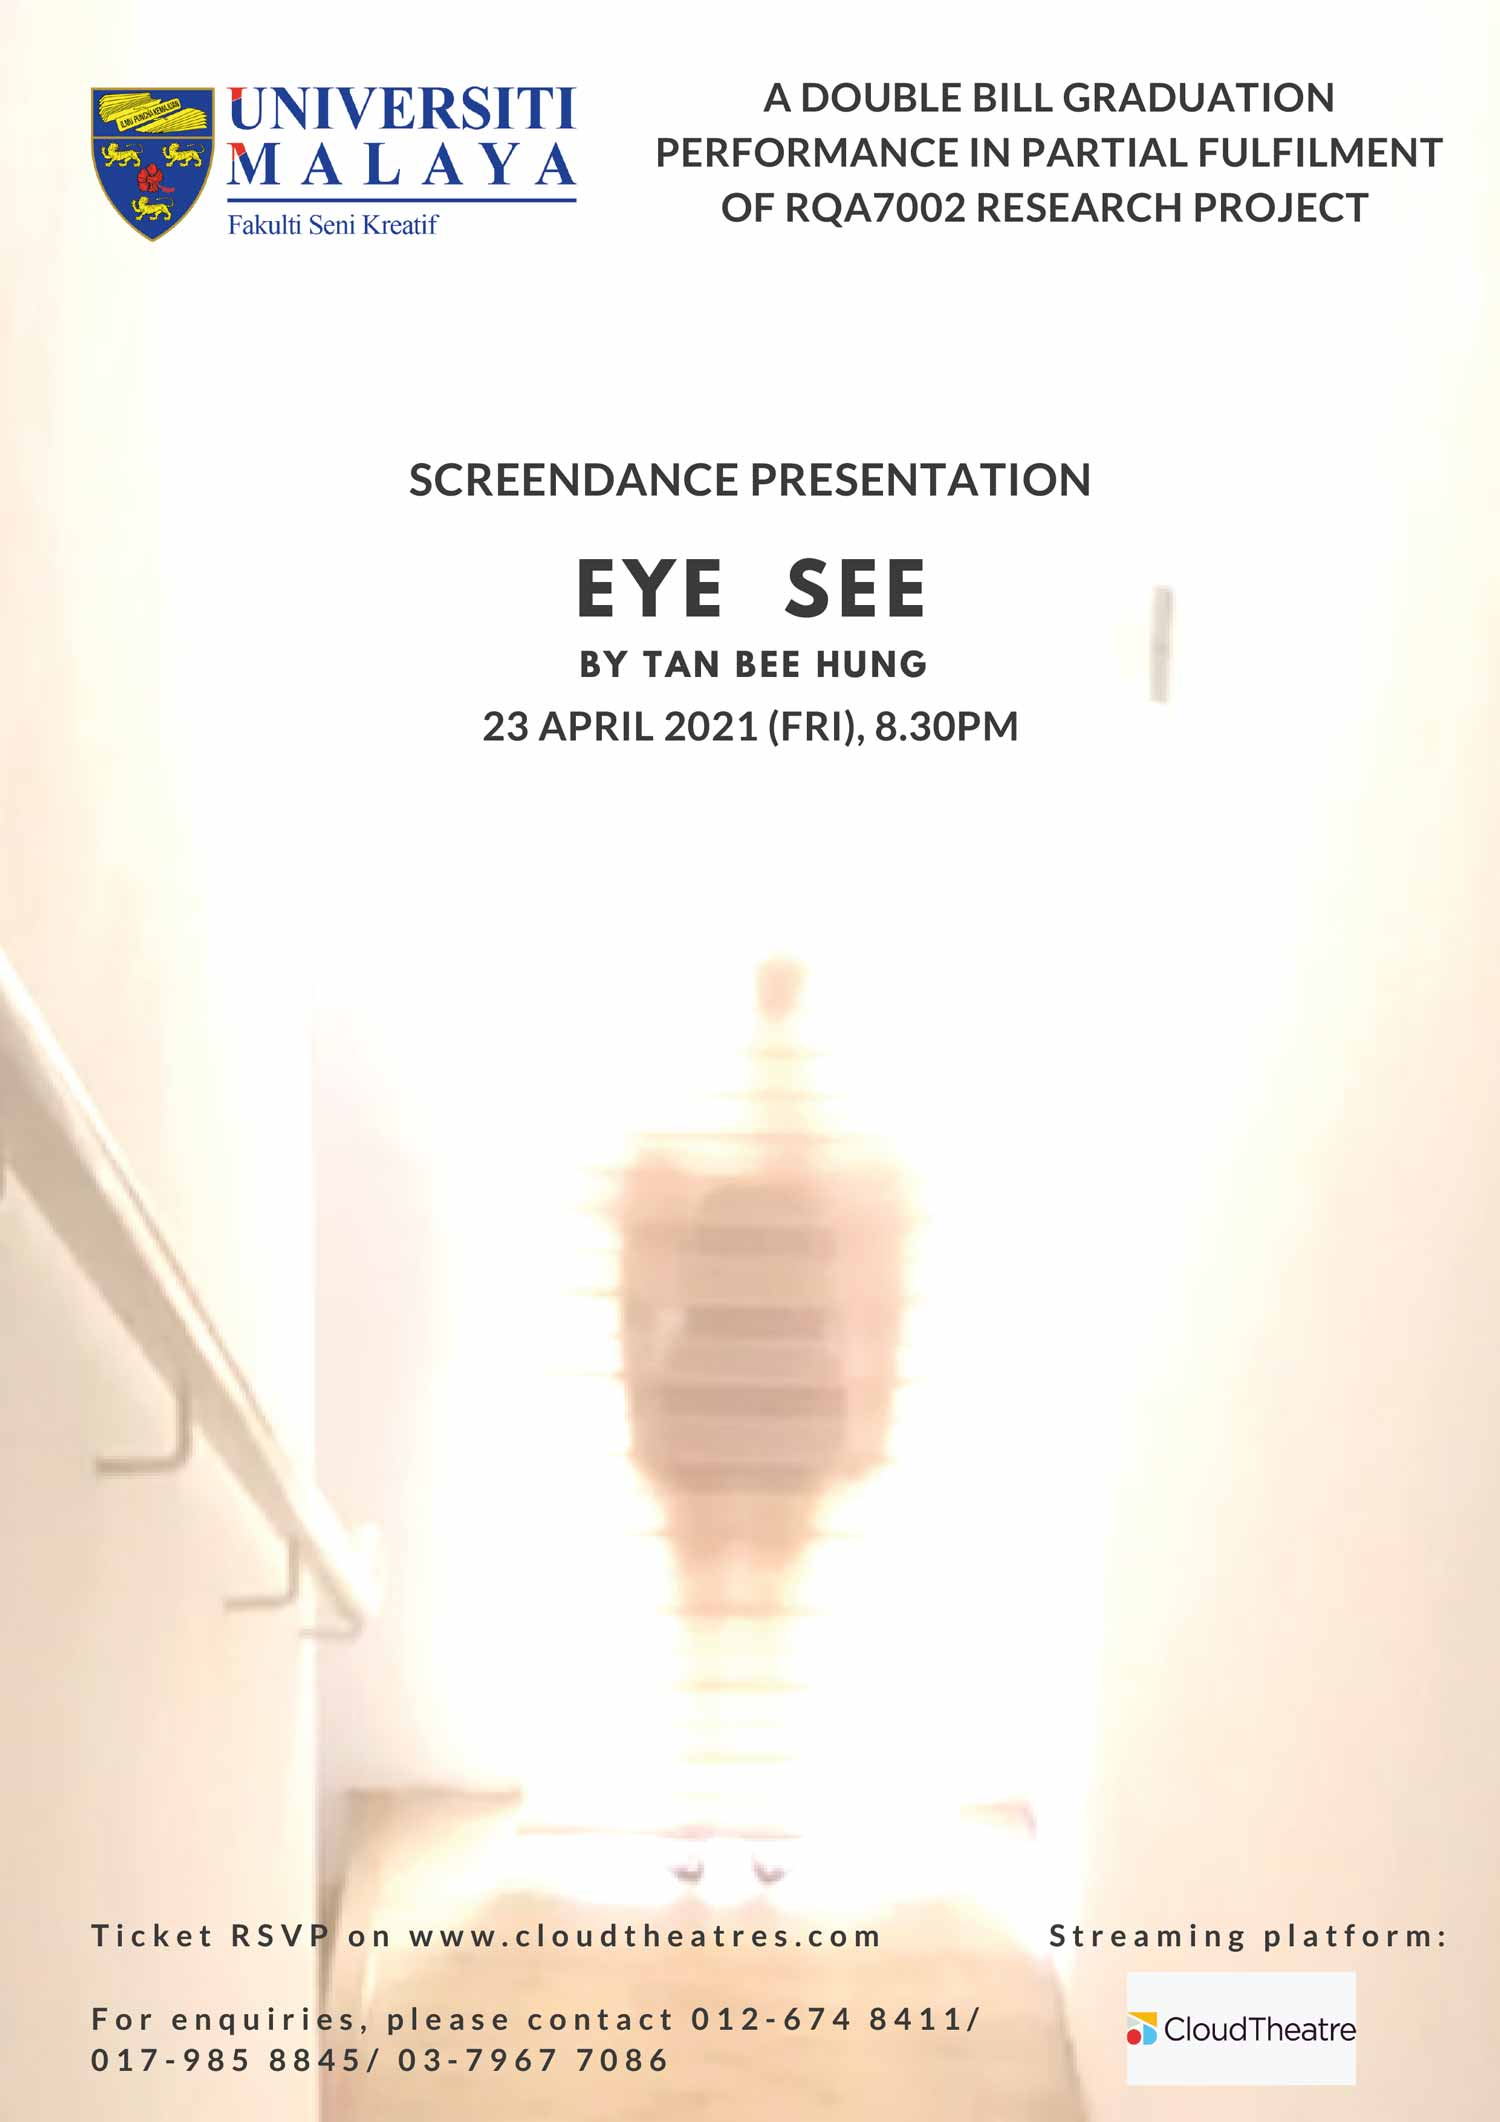 Eye See: A double bill graduation performance in partial fulfilment of  RQA7002 research project